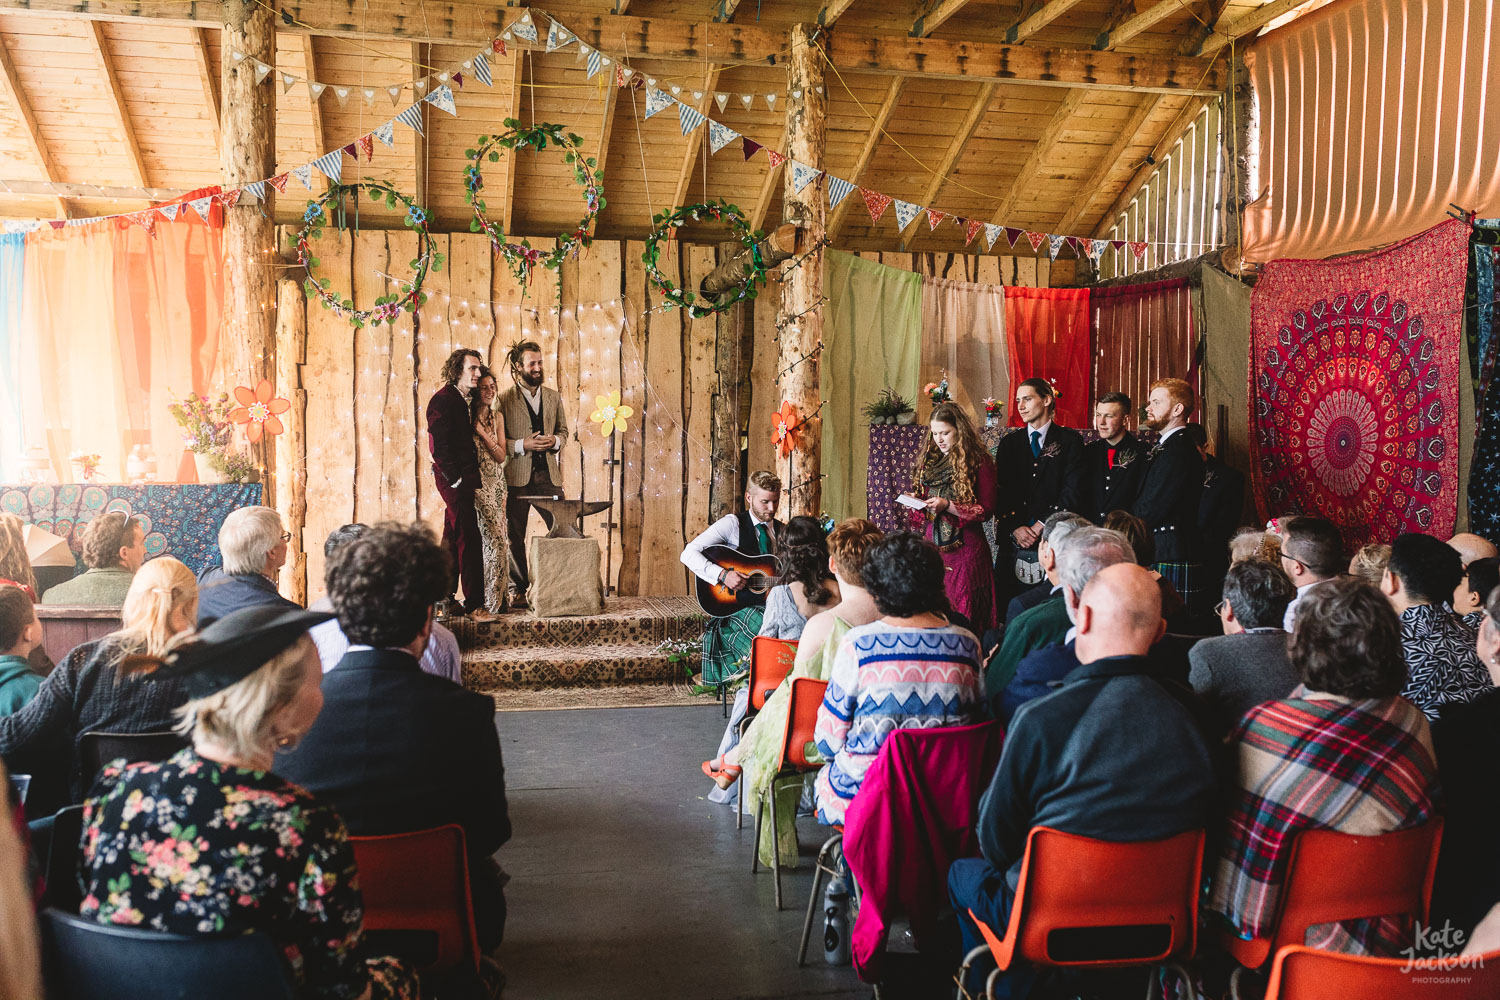 Wide photo of humanist wedding ceremony in festival barn with colourful drapes and decor as guest sings a song at the front and all the guests look on | Shropshire Wedding Photography